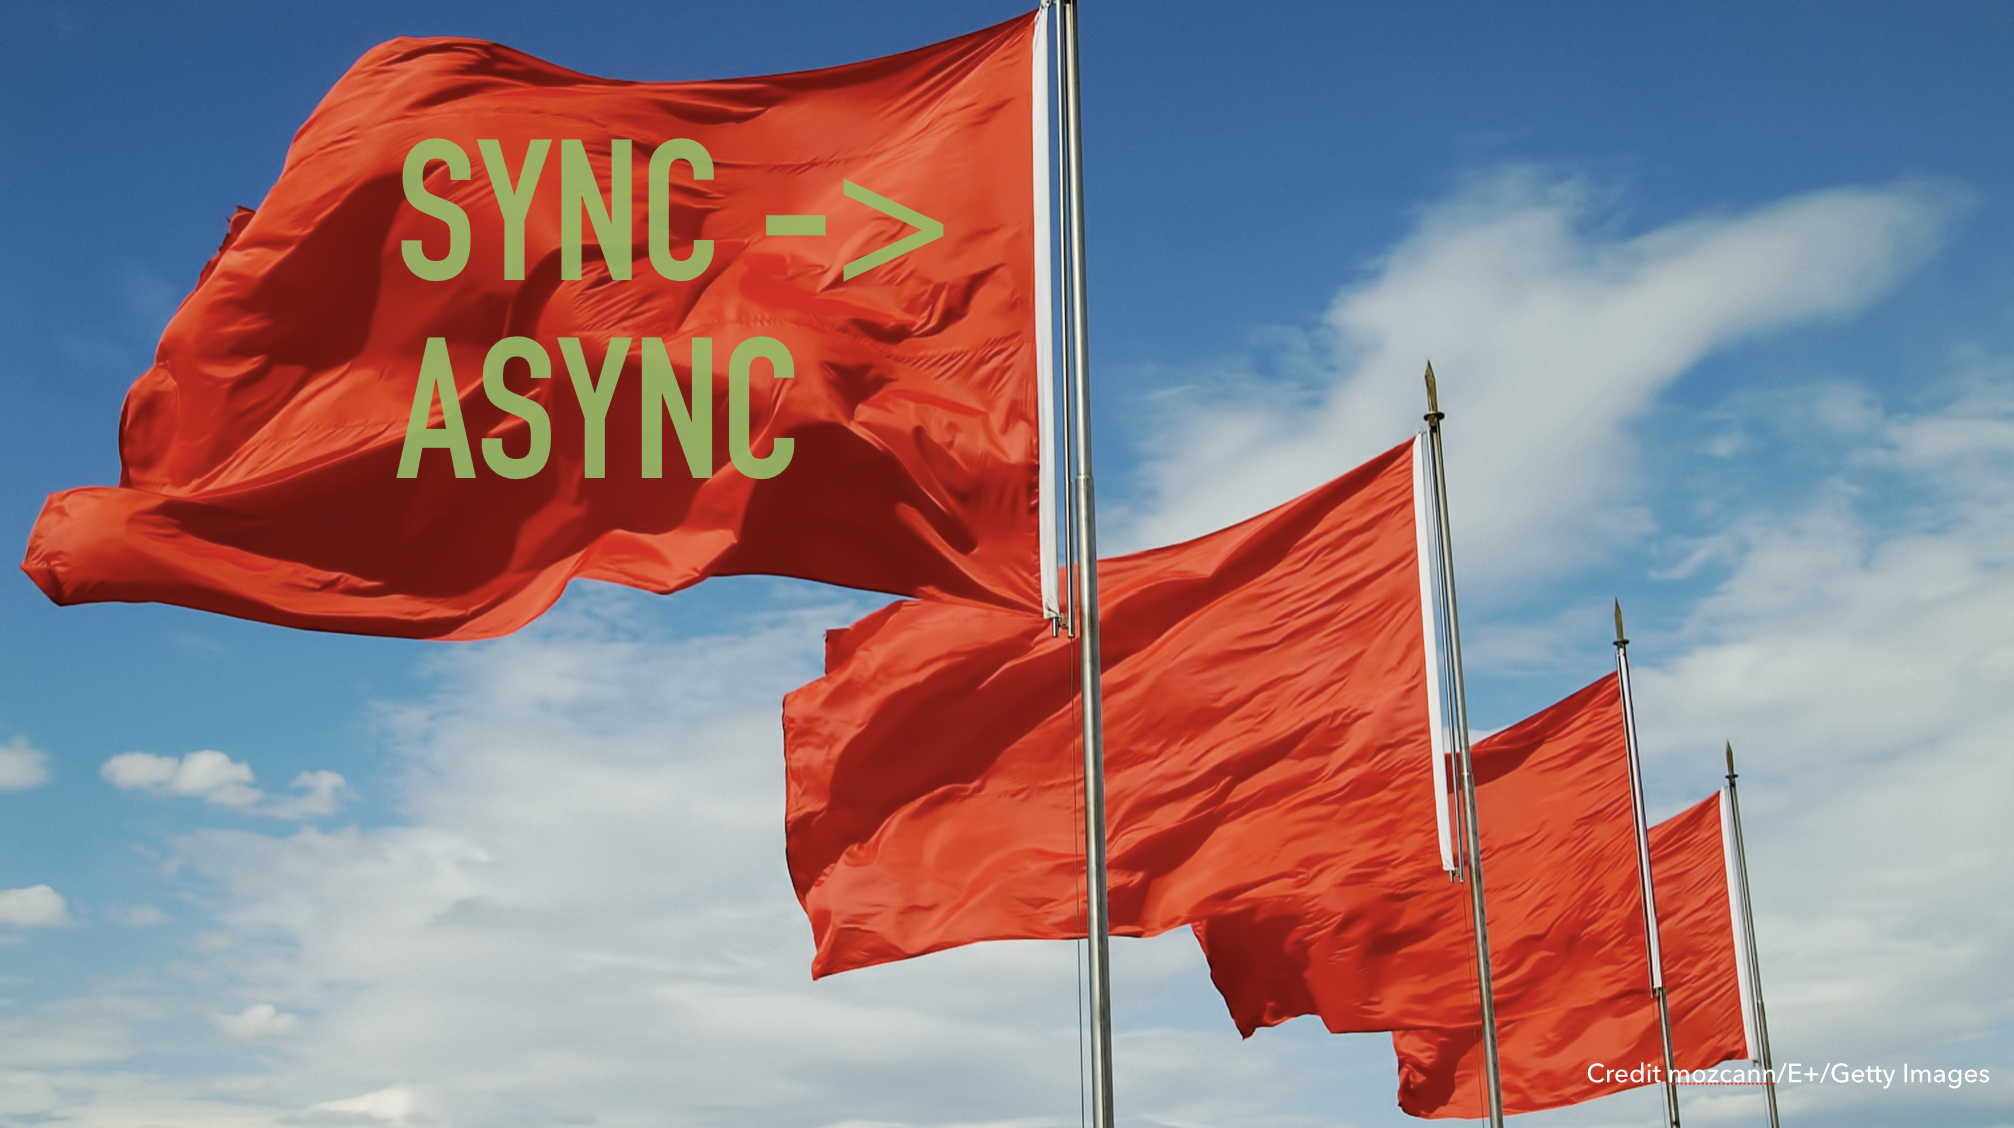 Slide text: Sync - /> Async